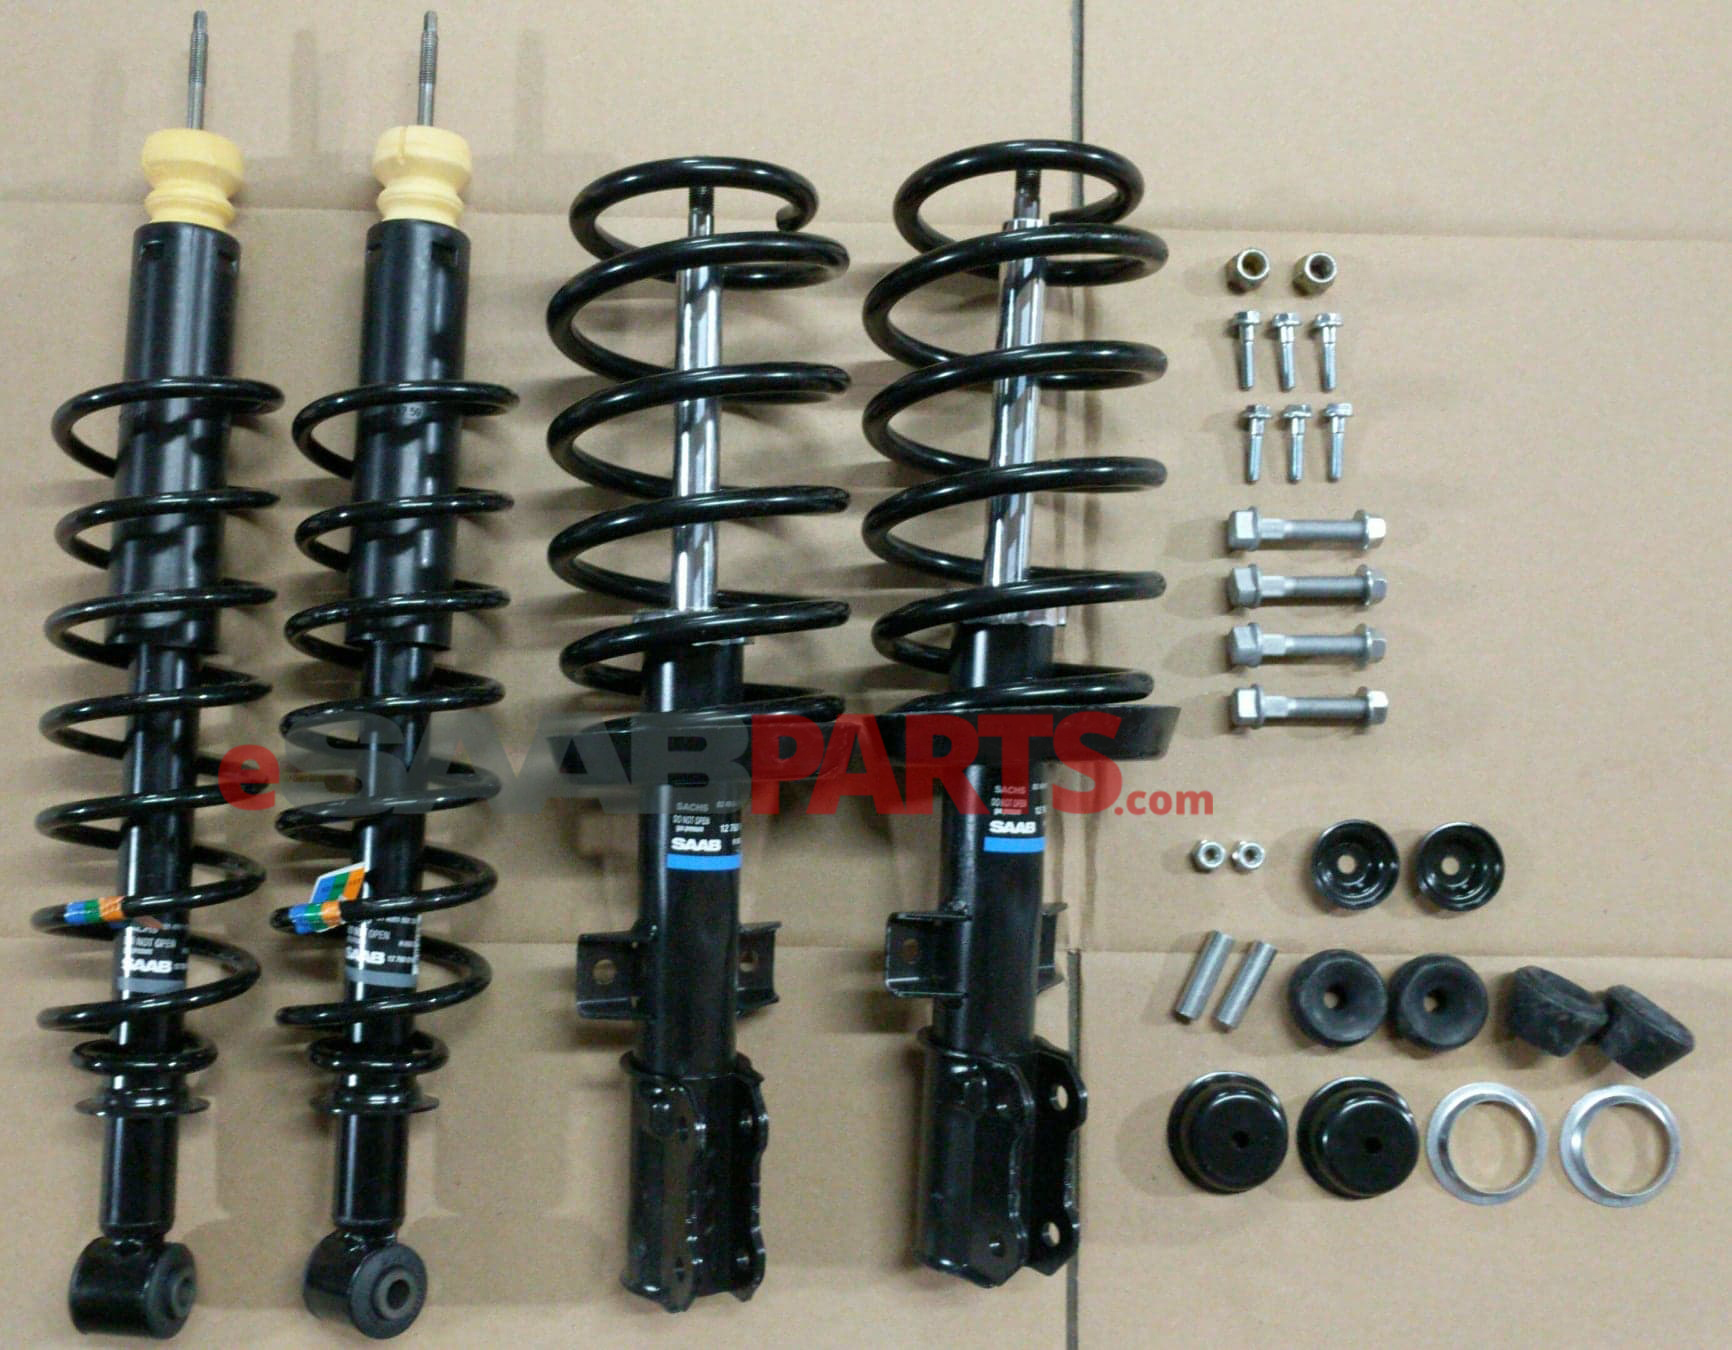 Saab 9-5 Front & Rear Suspension Kit (2002-2009 5D Wagon w/ Sport Chassis)